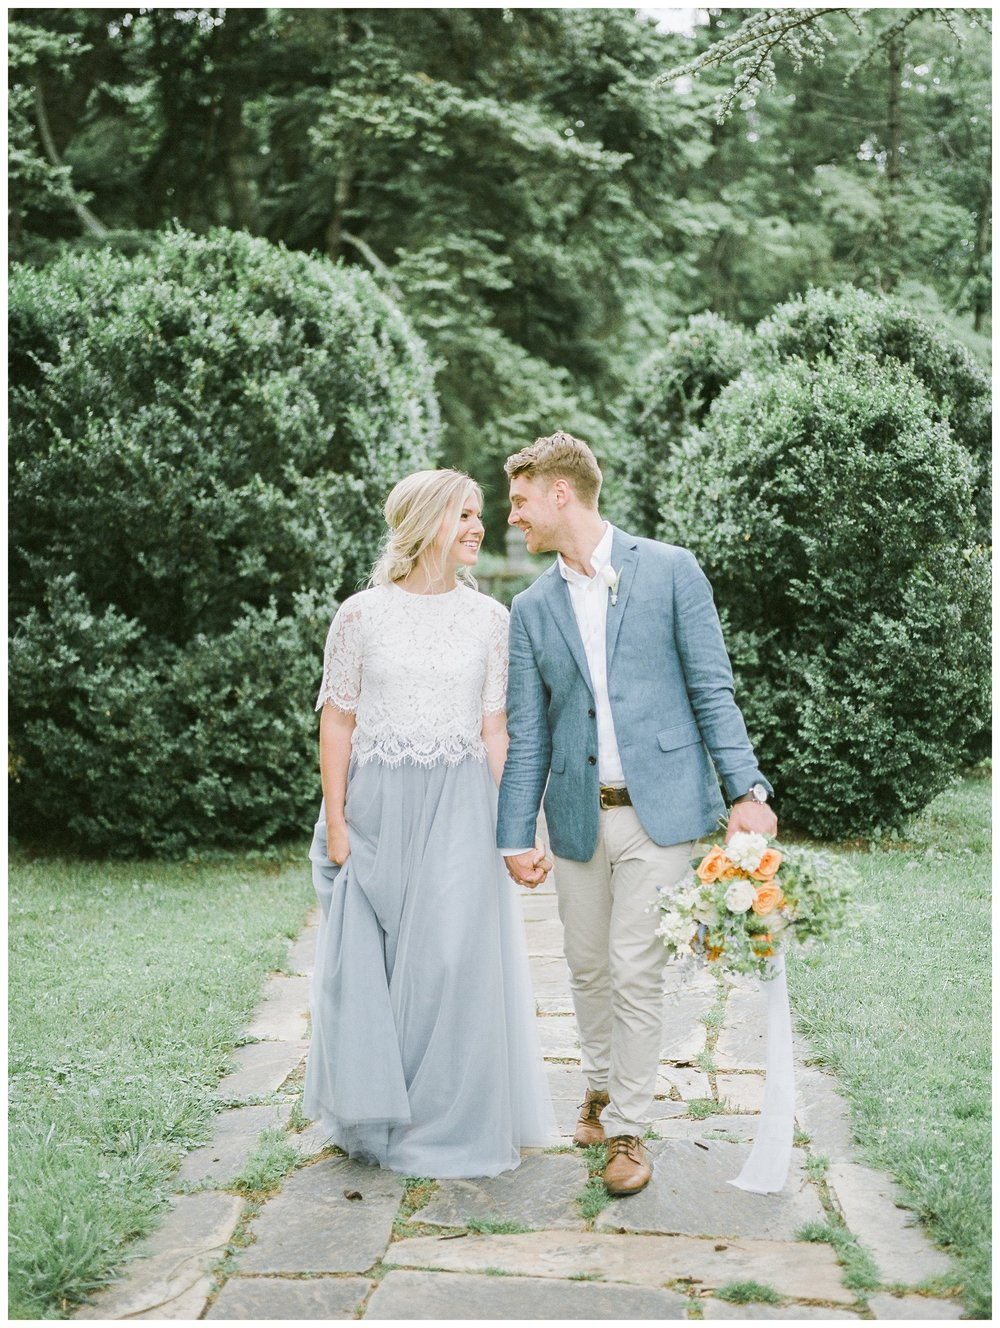 Rust Manor Wedding | Virginia Wedding Photographer Kir Tuben_0034.jpg